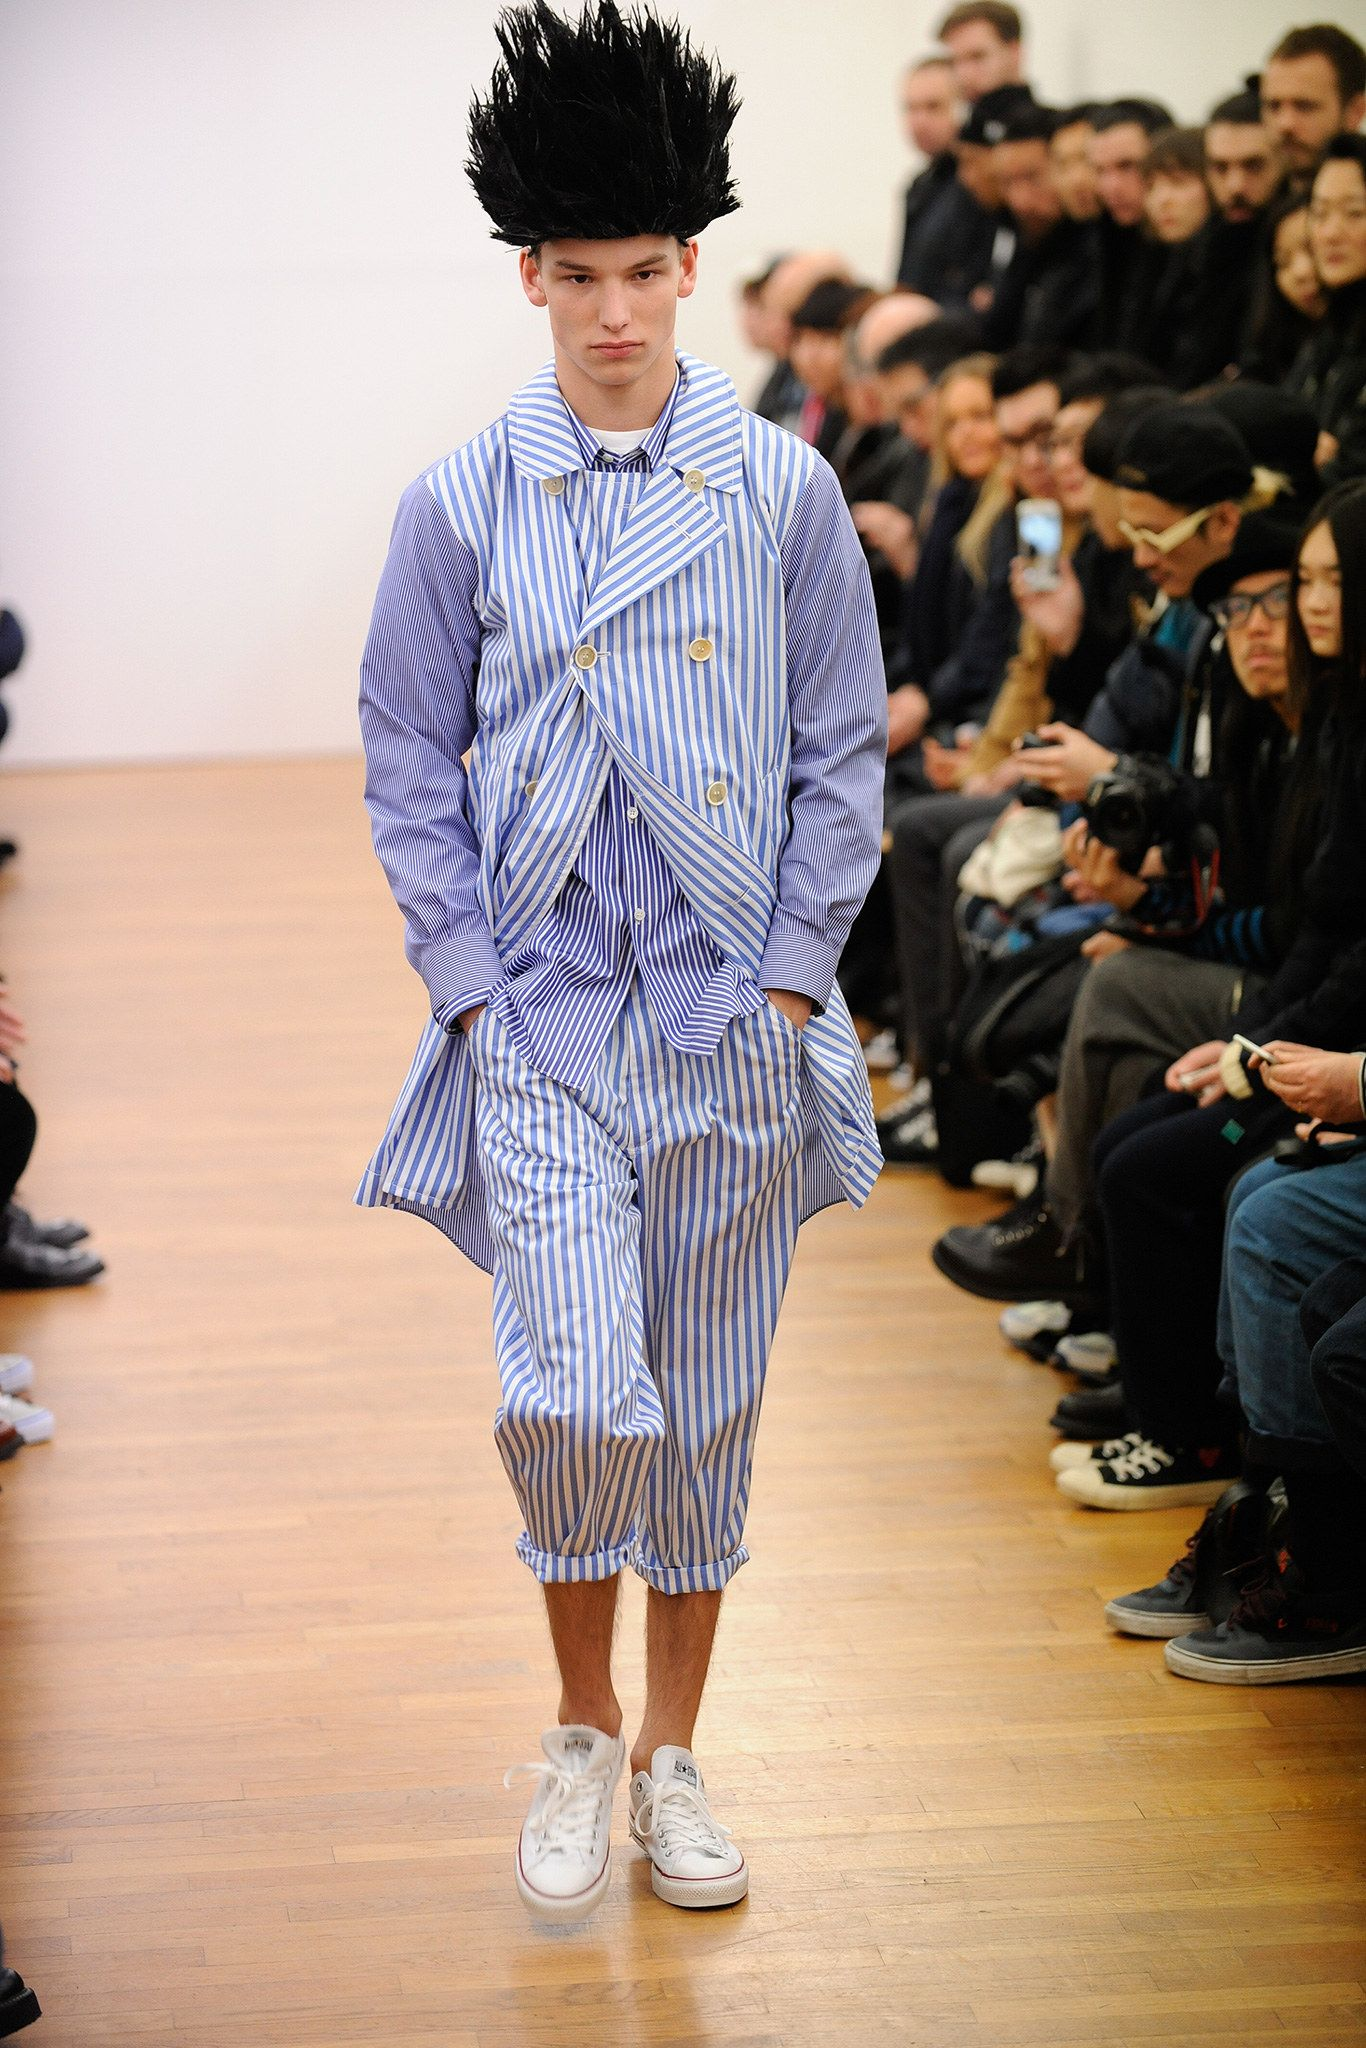 ba301b31abdfd2 Comme des Garçons Shirt Fall 2015 Menswear Collection Photos - Vogue